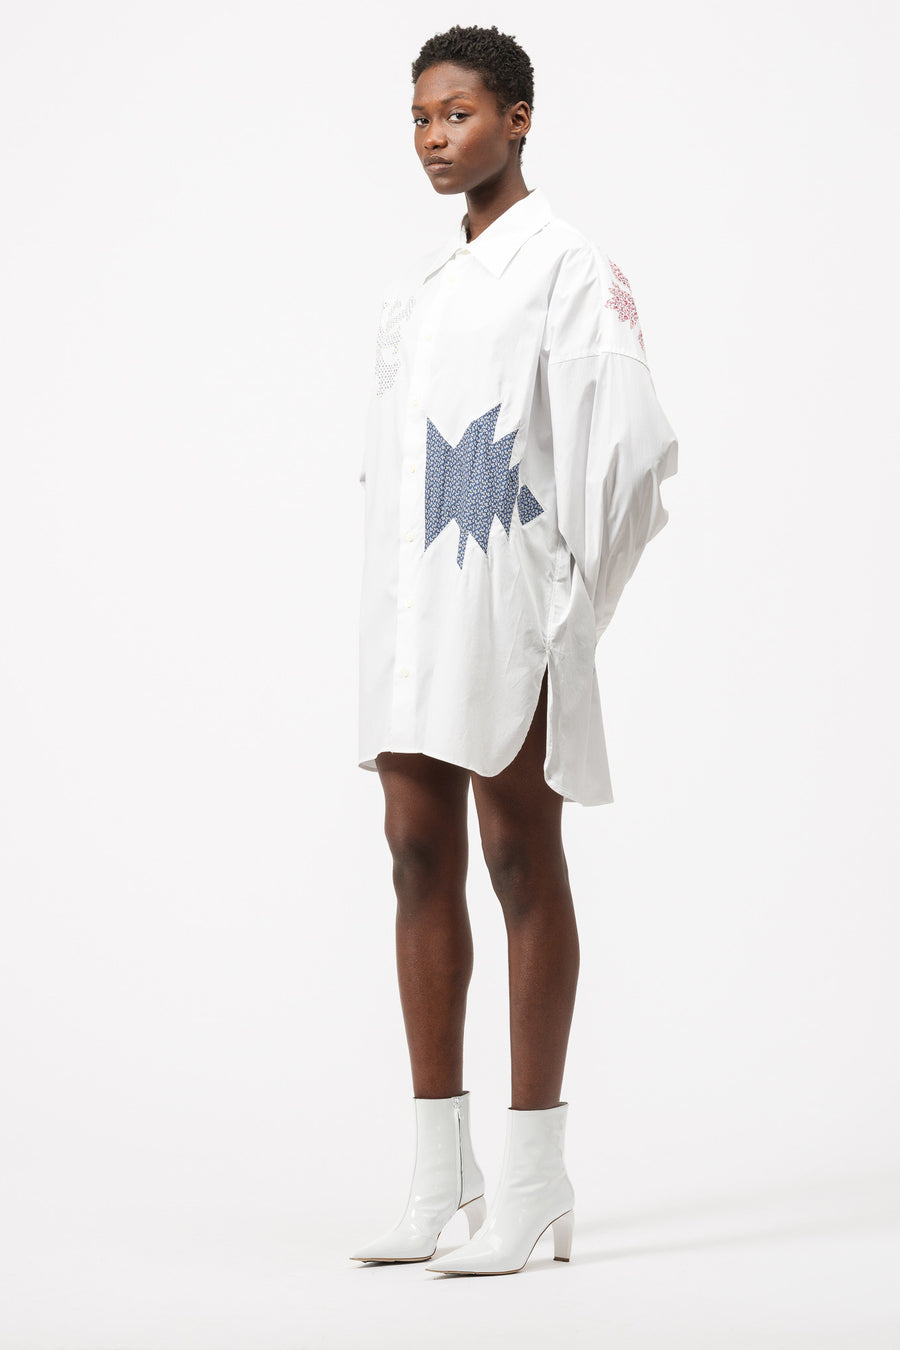 AMBUSH Patchwork Shirt in White - Notre